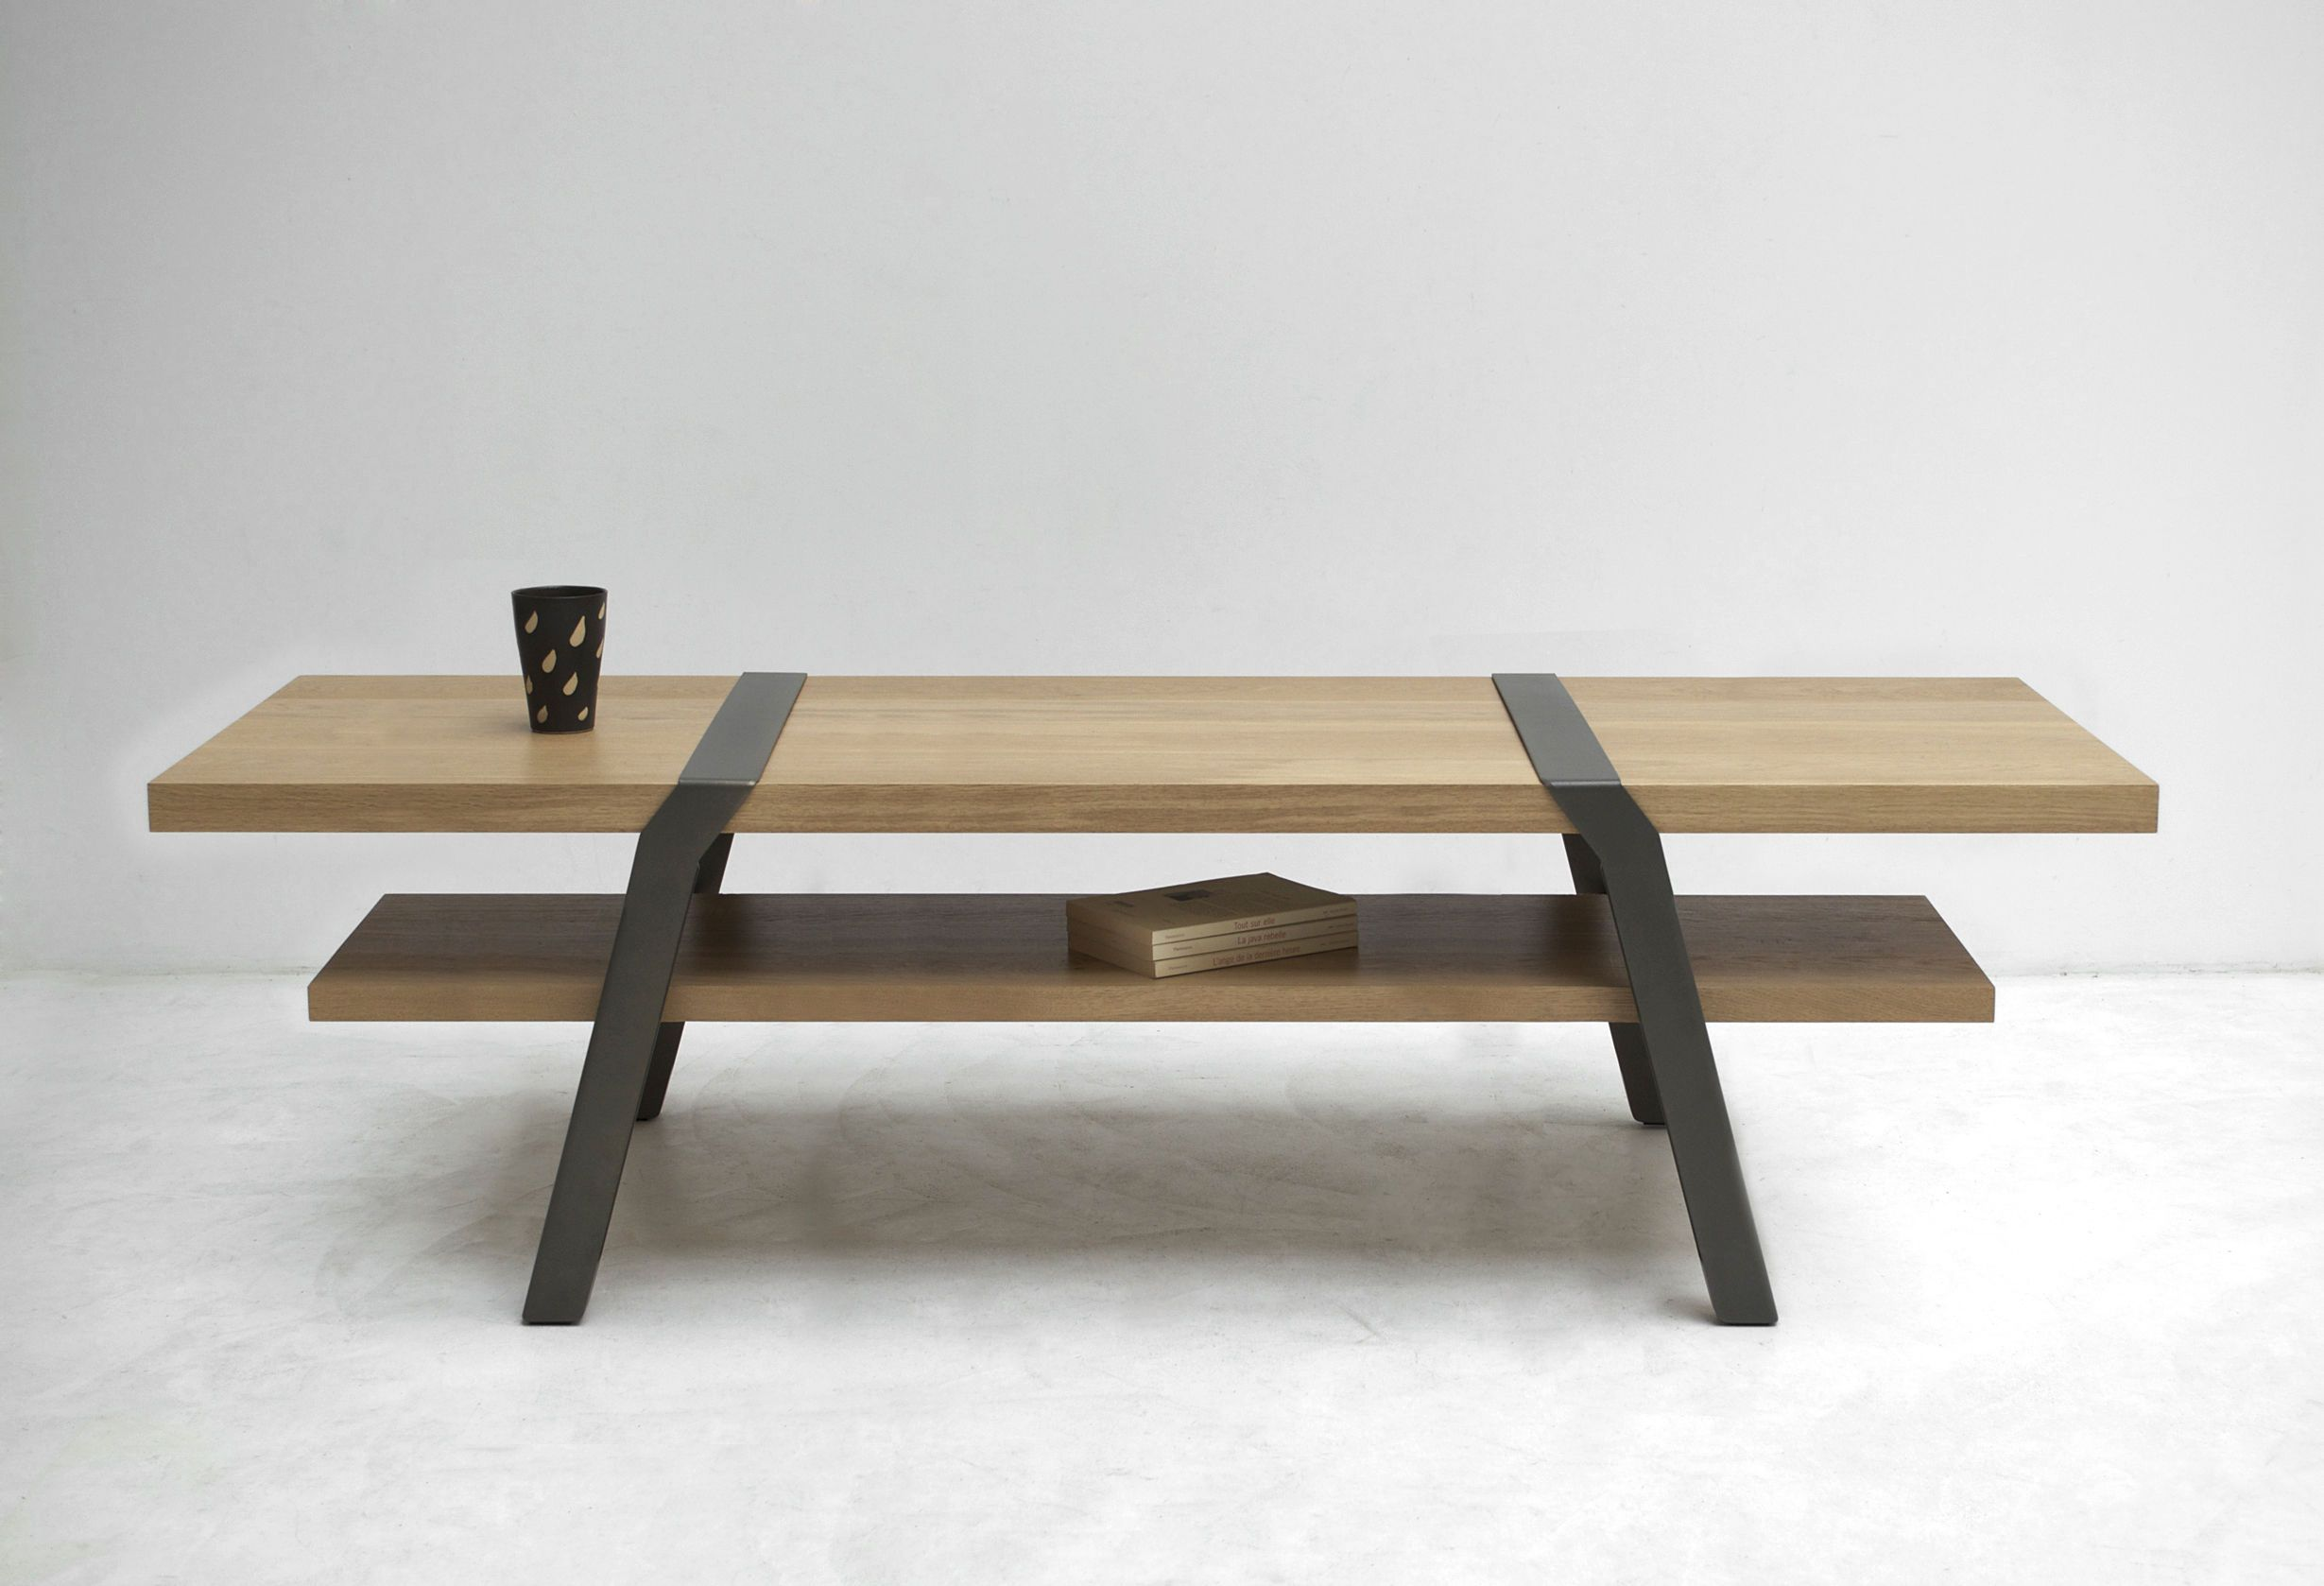 Pi Collection By Roderick Fry Oscar Ono Paris For Moaroom Tyylit Acheter Table Basse Table Basse Plancher Bois